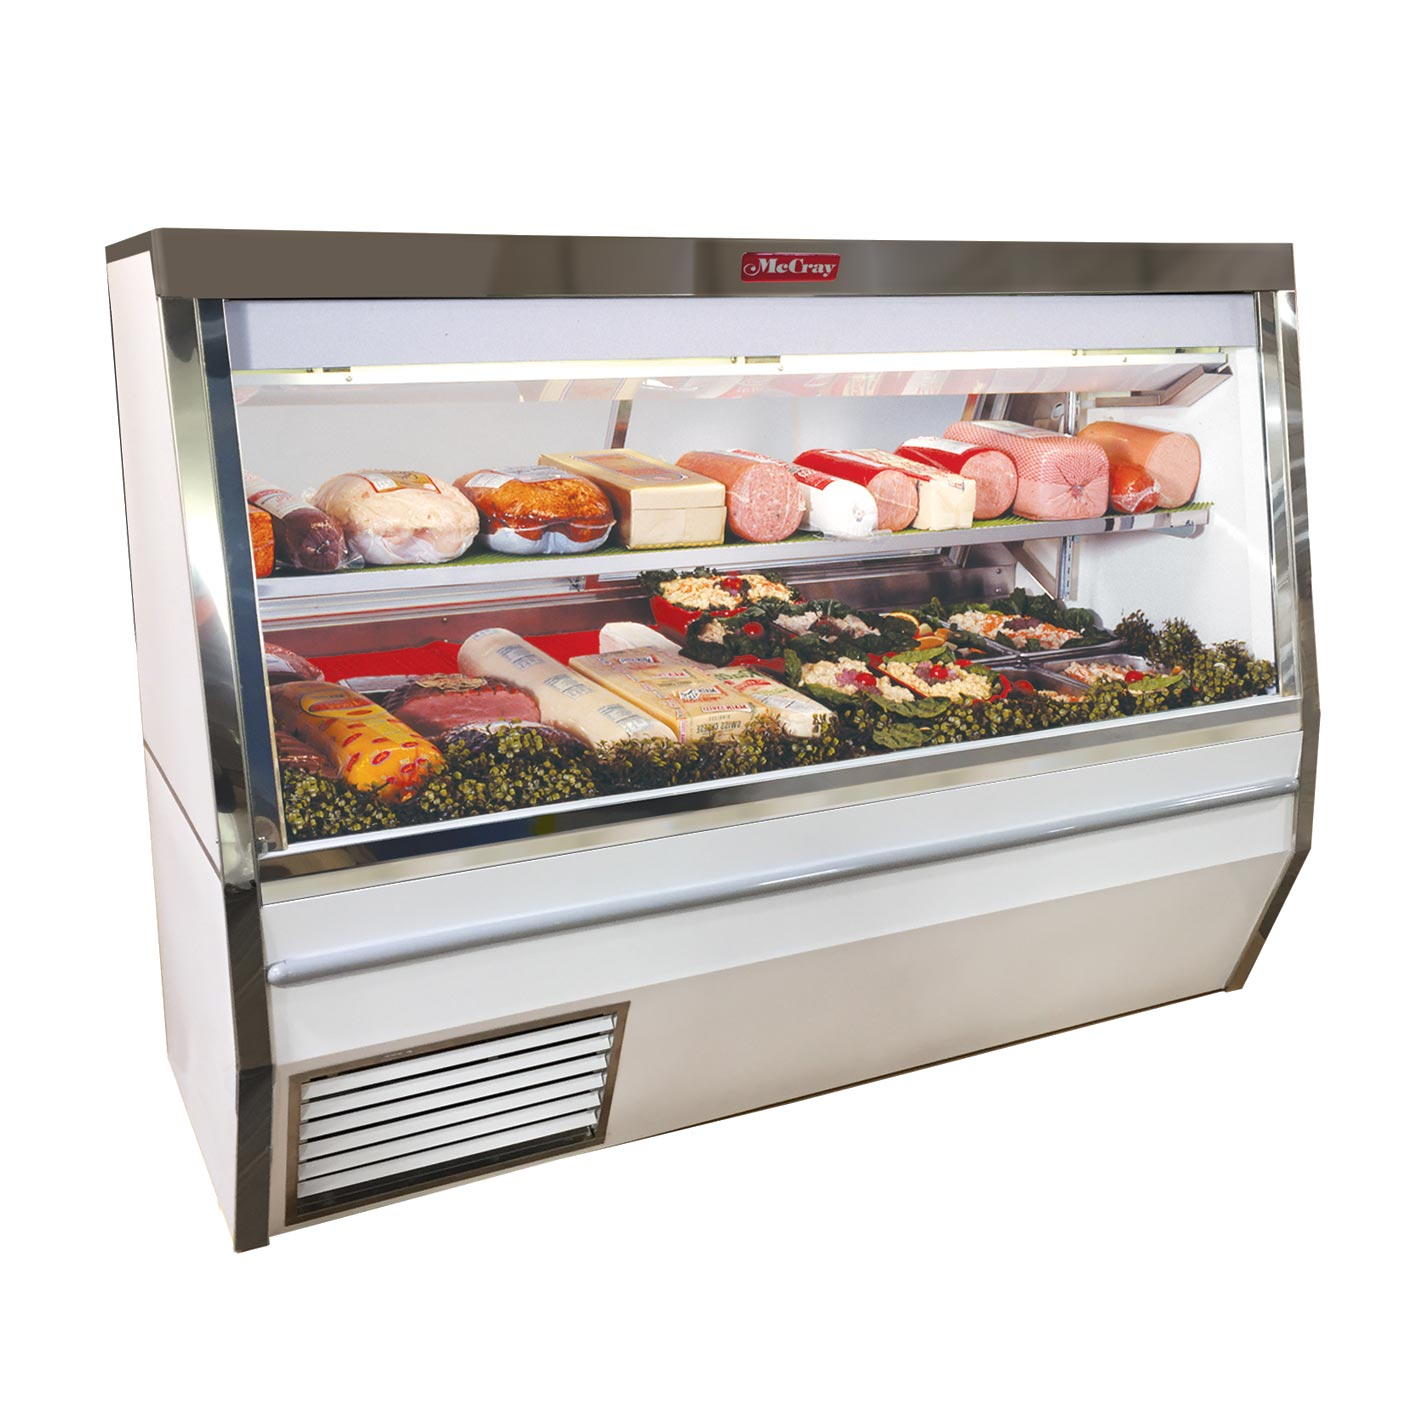 Howard-McCray R-CDS34N-6-S-LS-LED display case, refrigerated deli